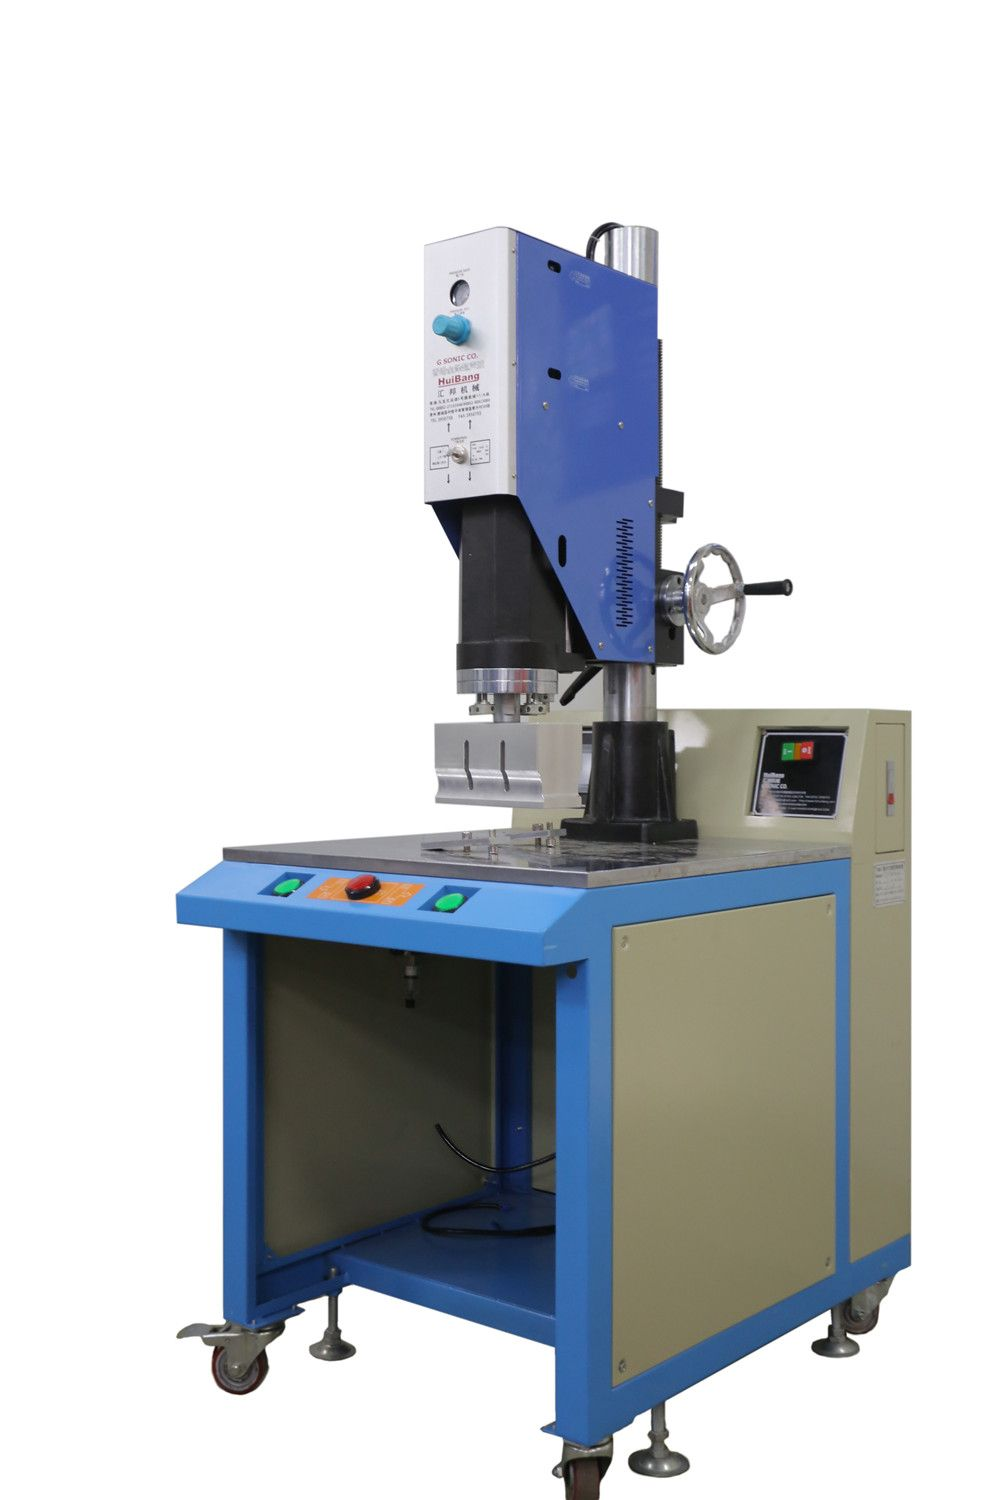 pin by china automatic on automatic screw locking machine welding machine welding locker storage [ 1000 x 1500 Pixel ]